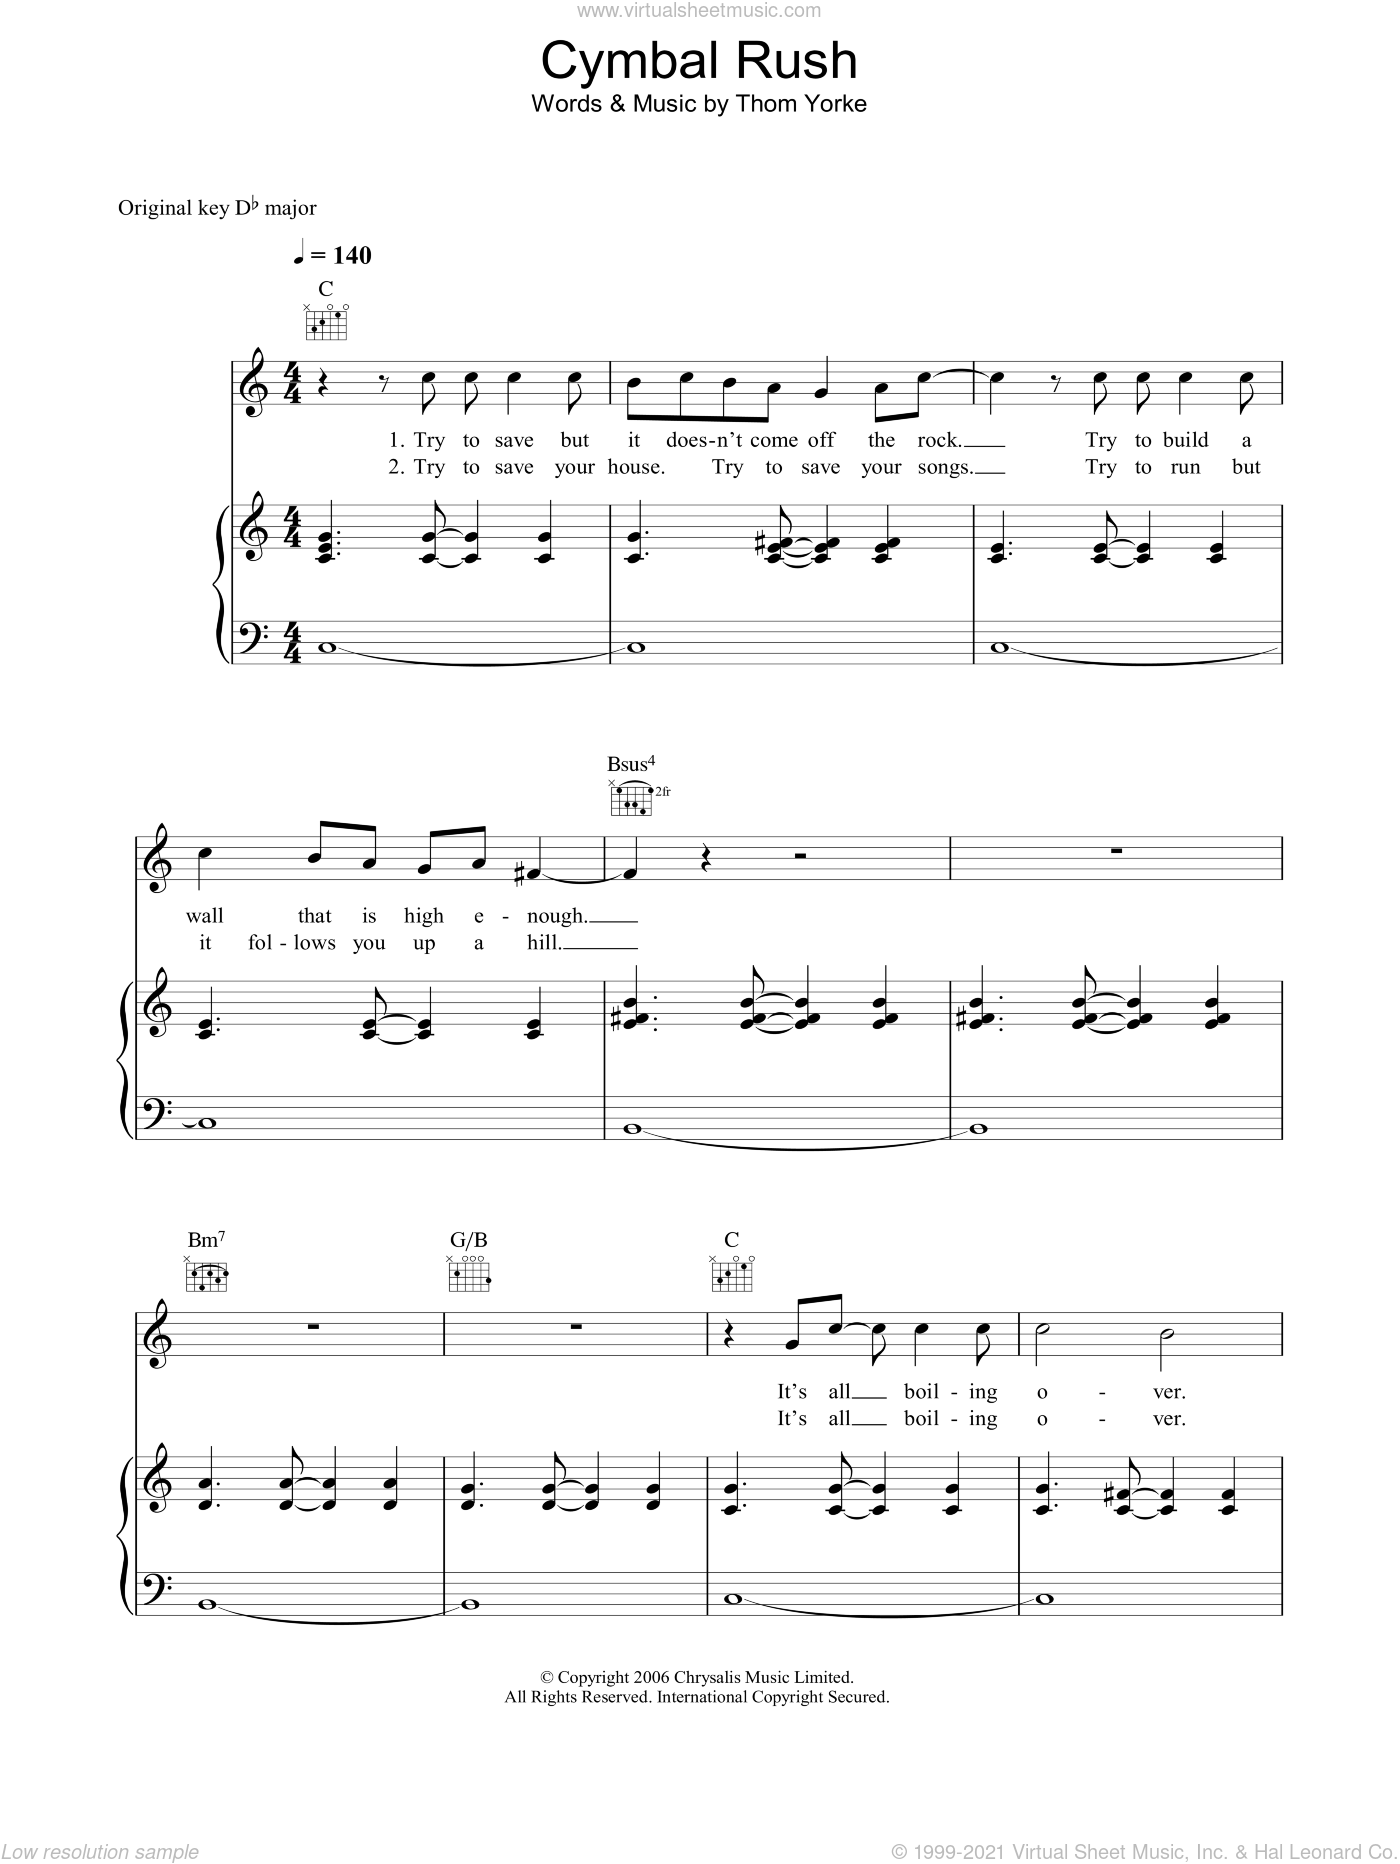 Cymbal Rush sheet music for voice, piano or guitar by Thom Yorke